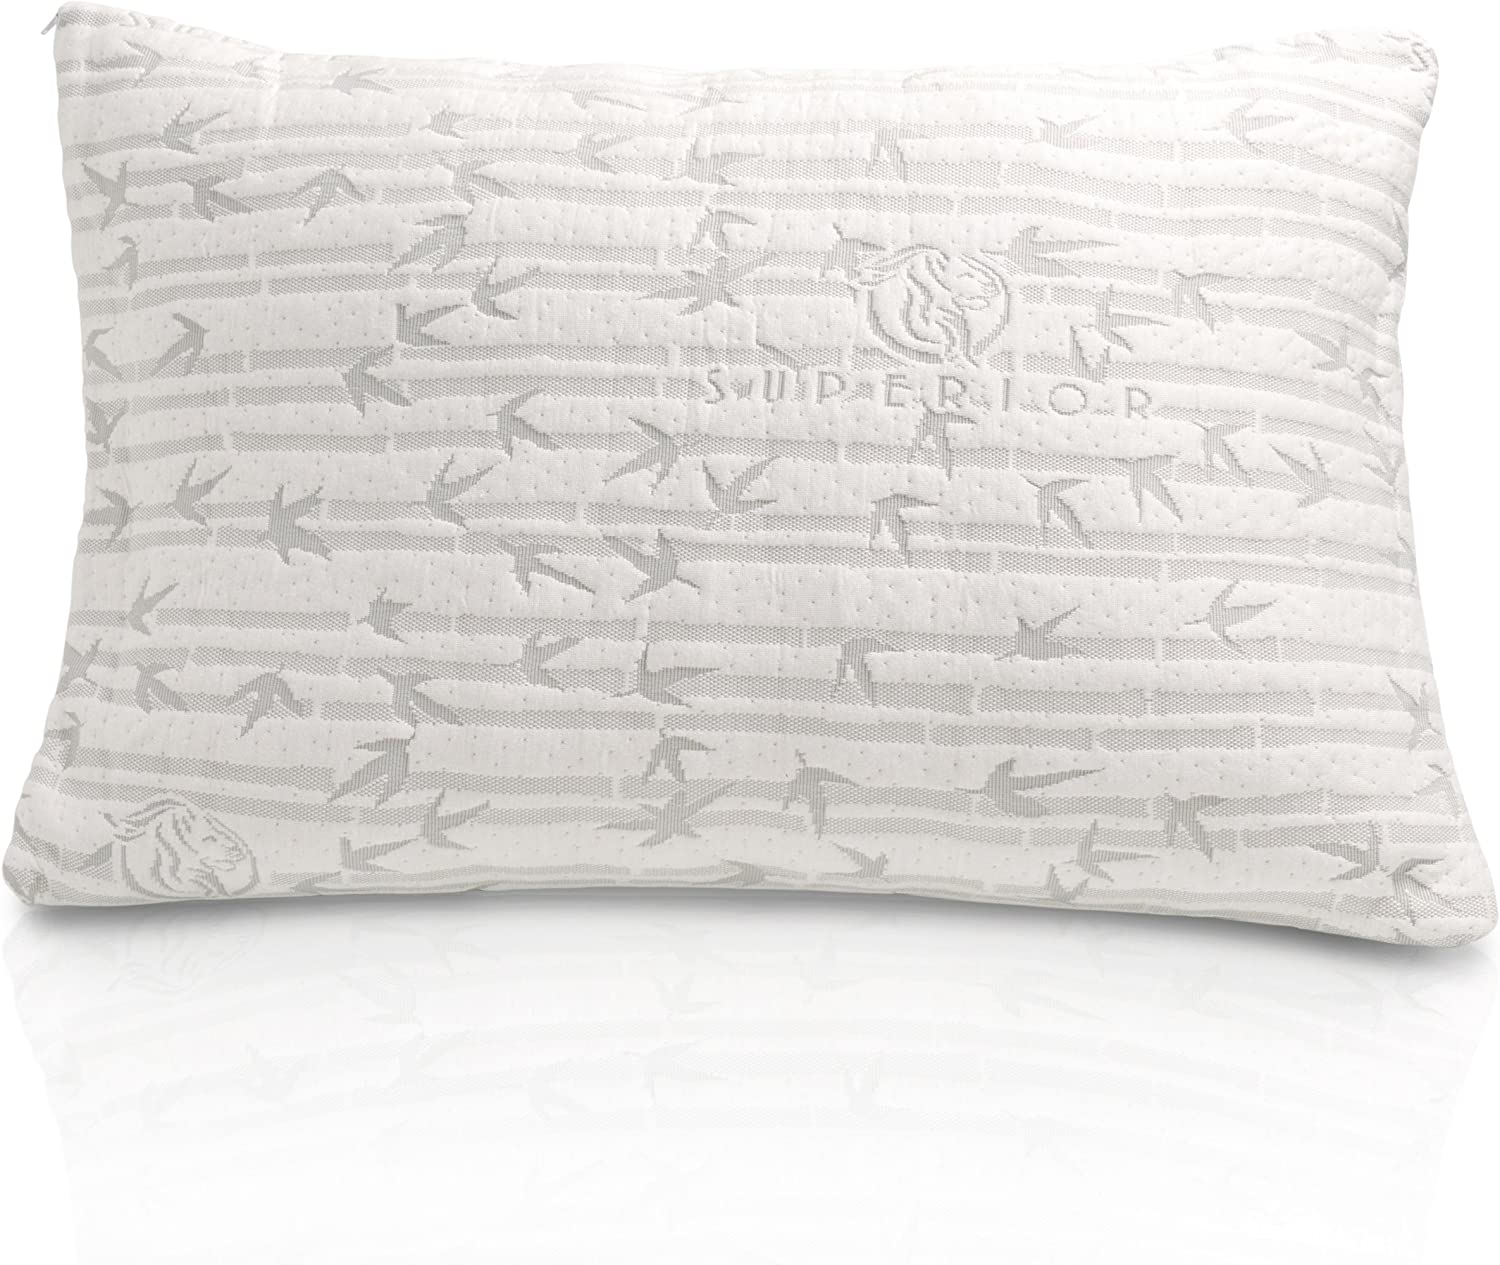 "Superior Shredded Memory Foam Pillow with Adjustable Support for Back, Stomach, and Side Sleepers, Removable Zippered Cover made with Cooling and Breathable Rayon from Bamboo - King Size, 19"" x 36"""